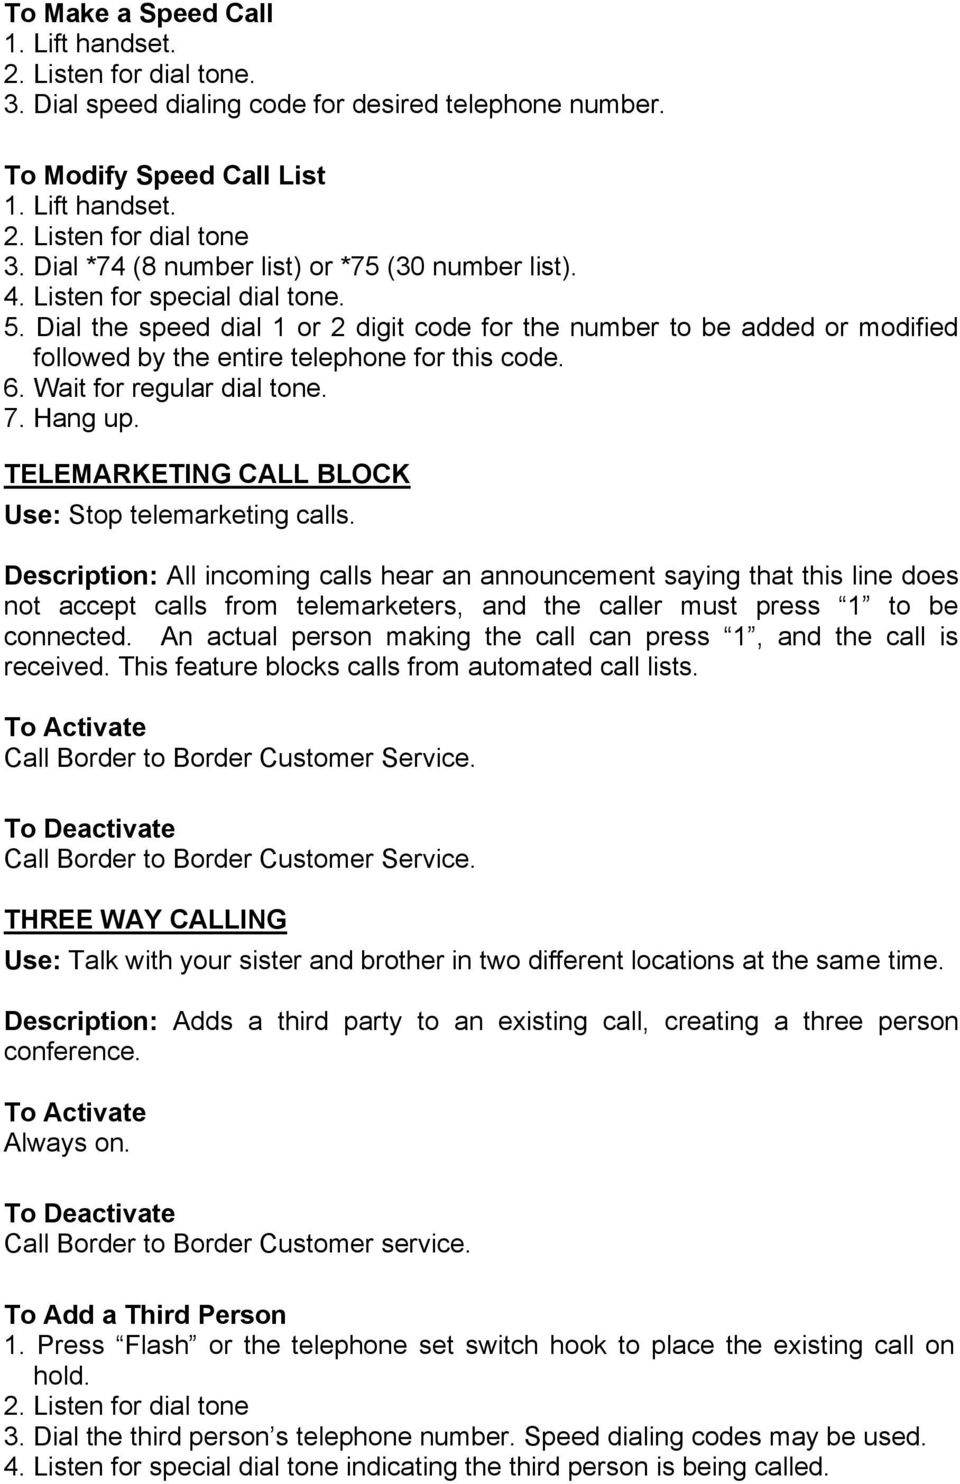 TELEMARKETING CALL BLOCK Use: Stop telemarketing calls.